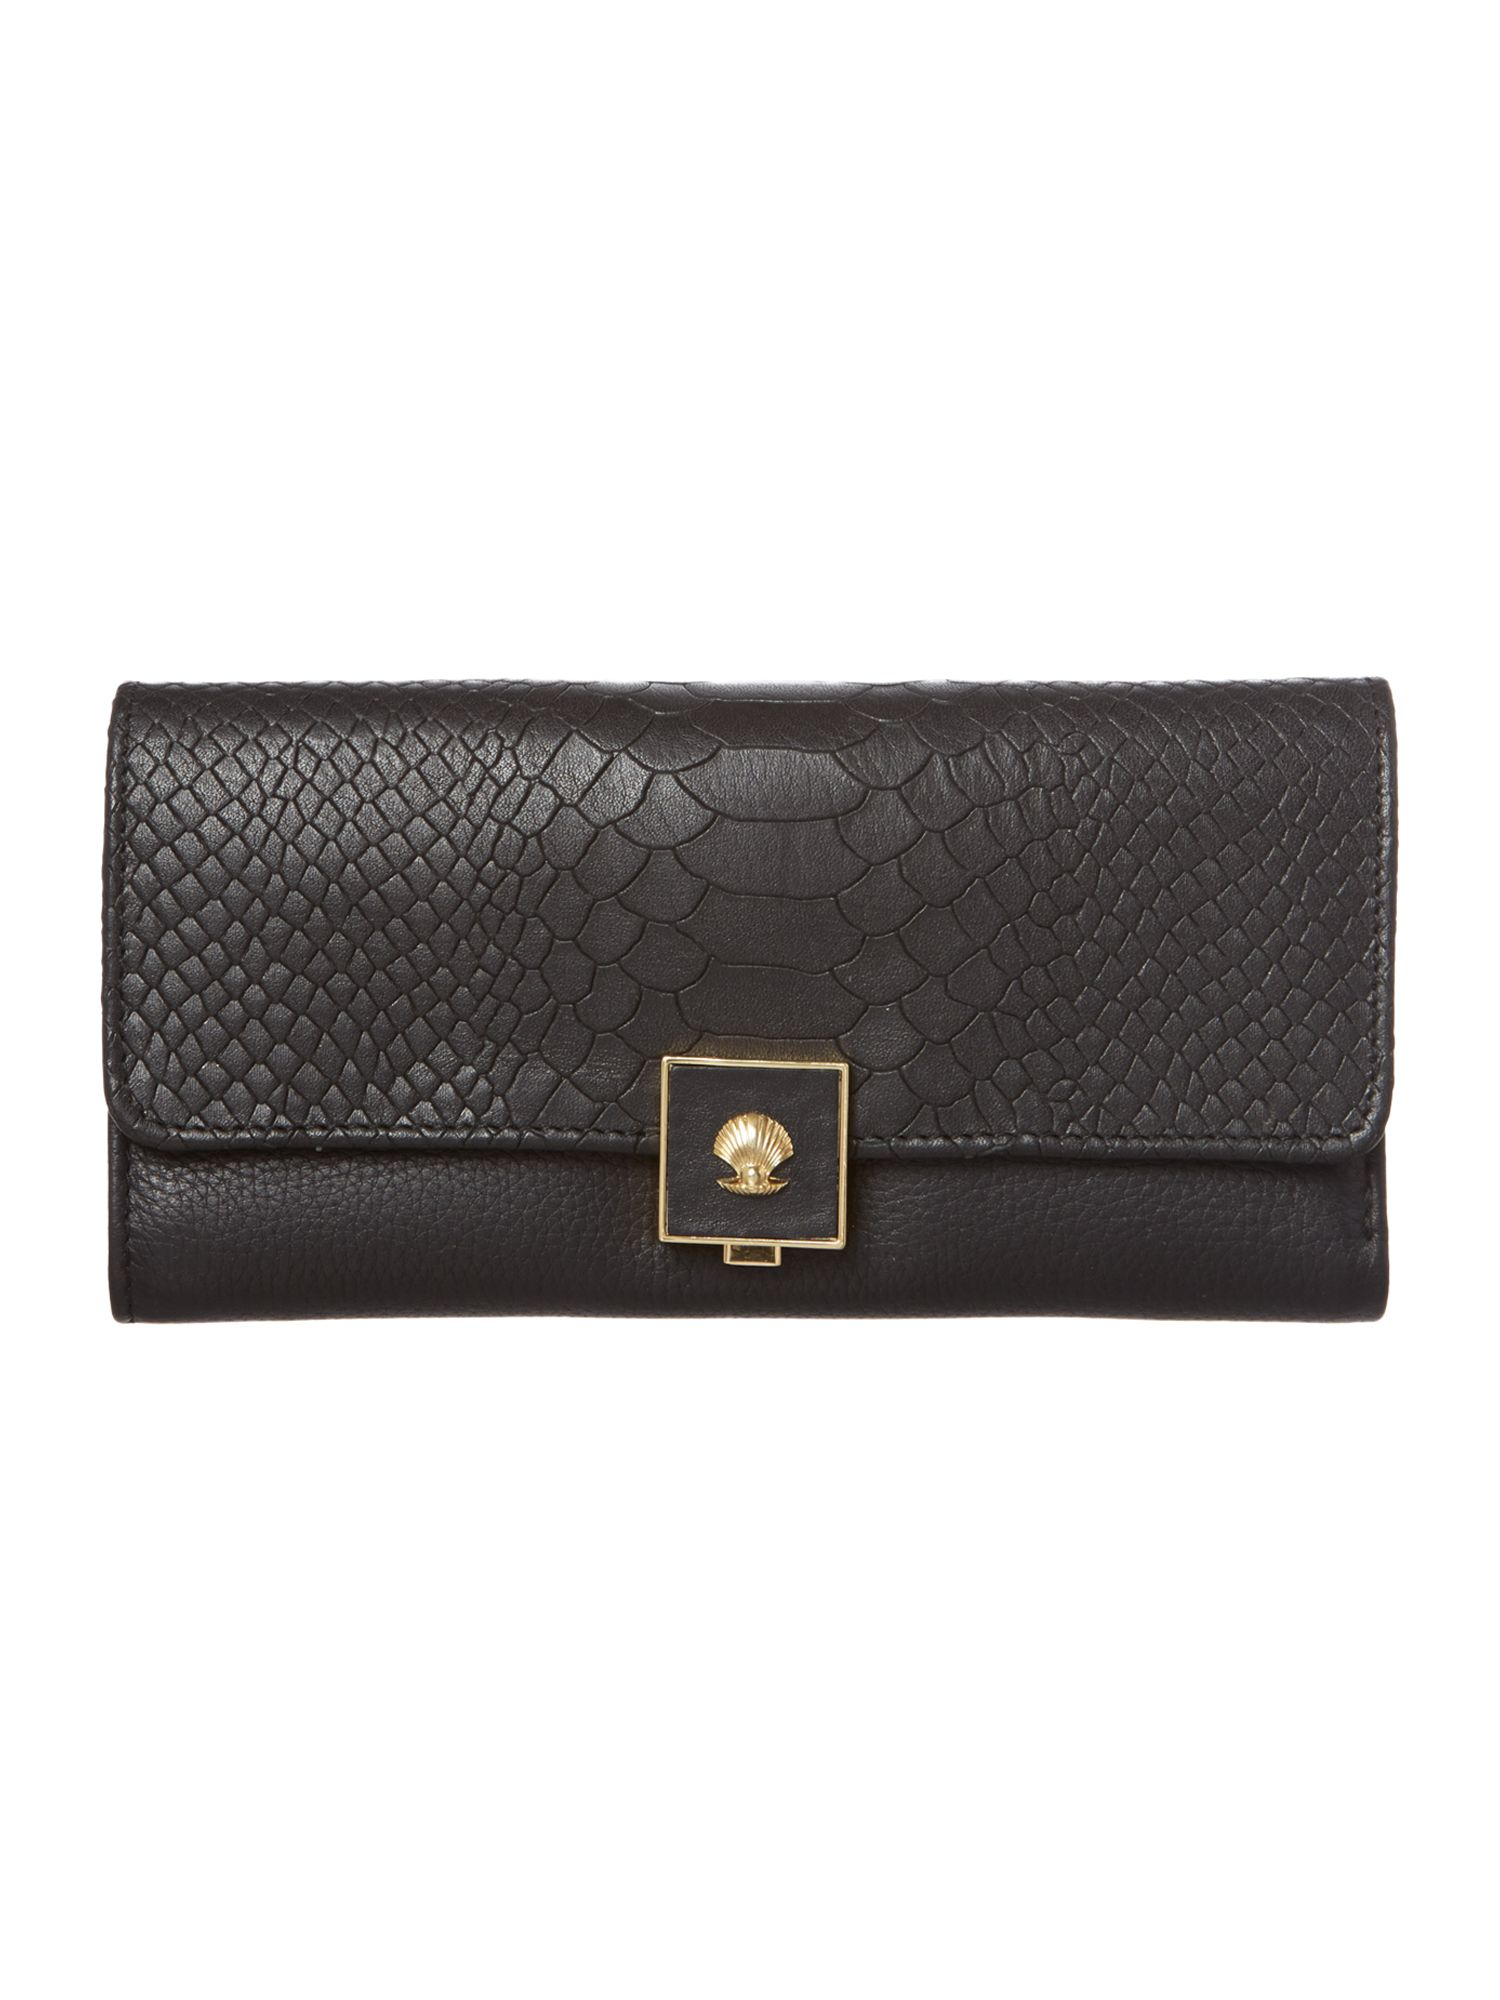 Parker black large flap over purse